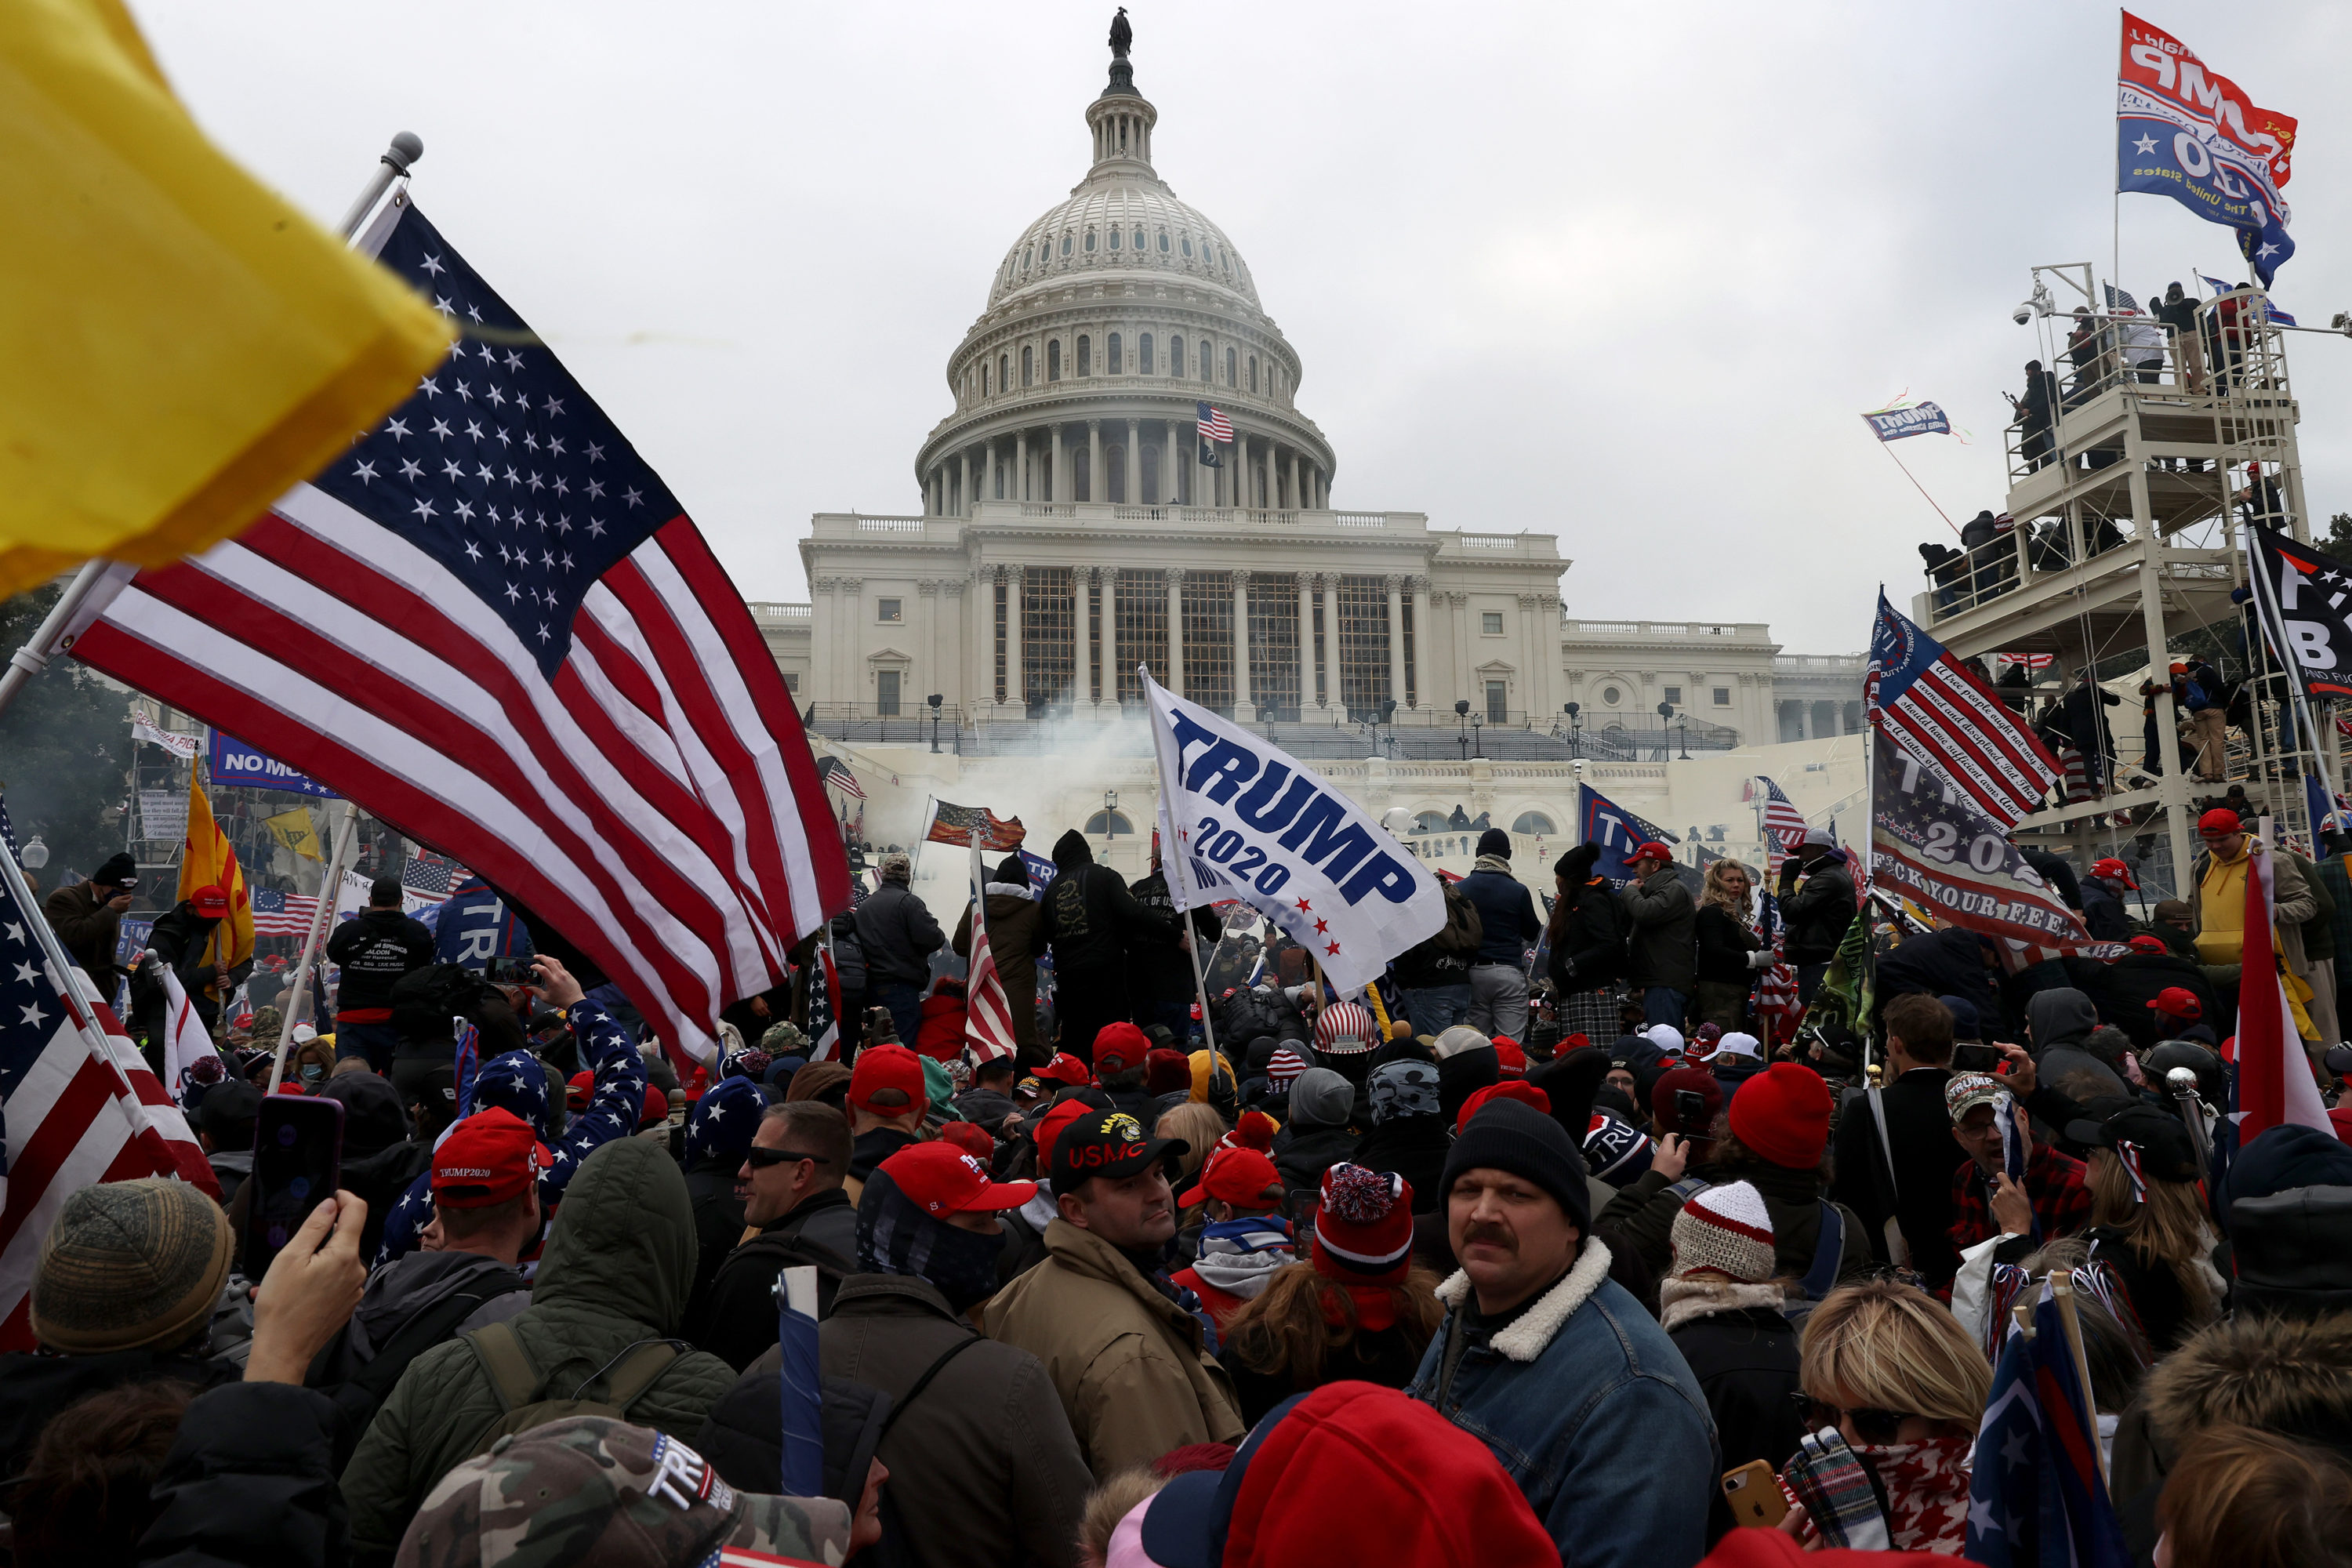 Far-right Trump supporters gather outside the U.S. Capitol Building on January 06, 2021 in Washington, DC. (Tasos Katopodis/Getty Images)